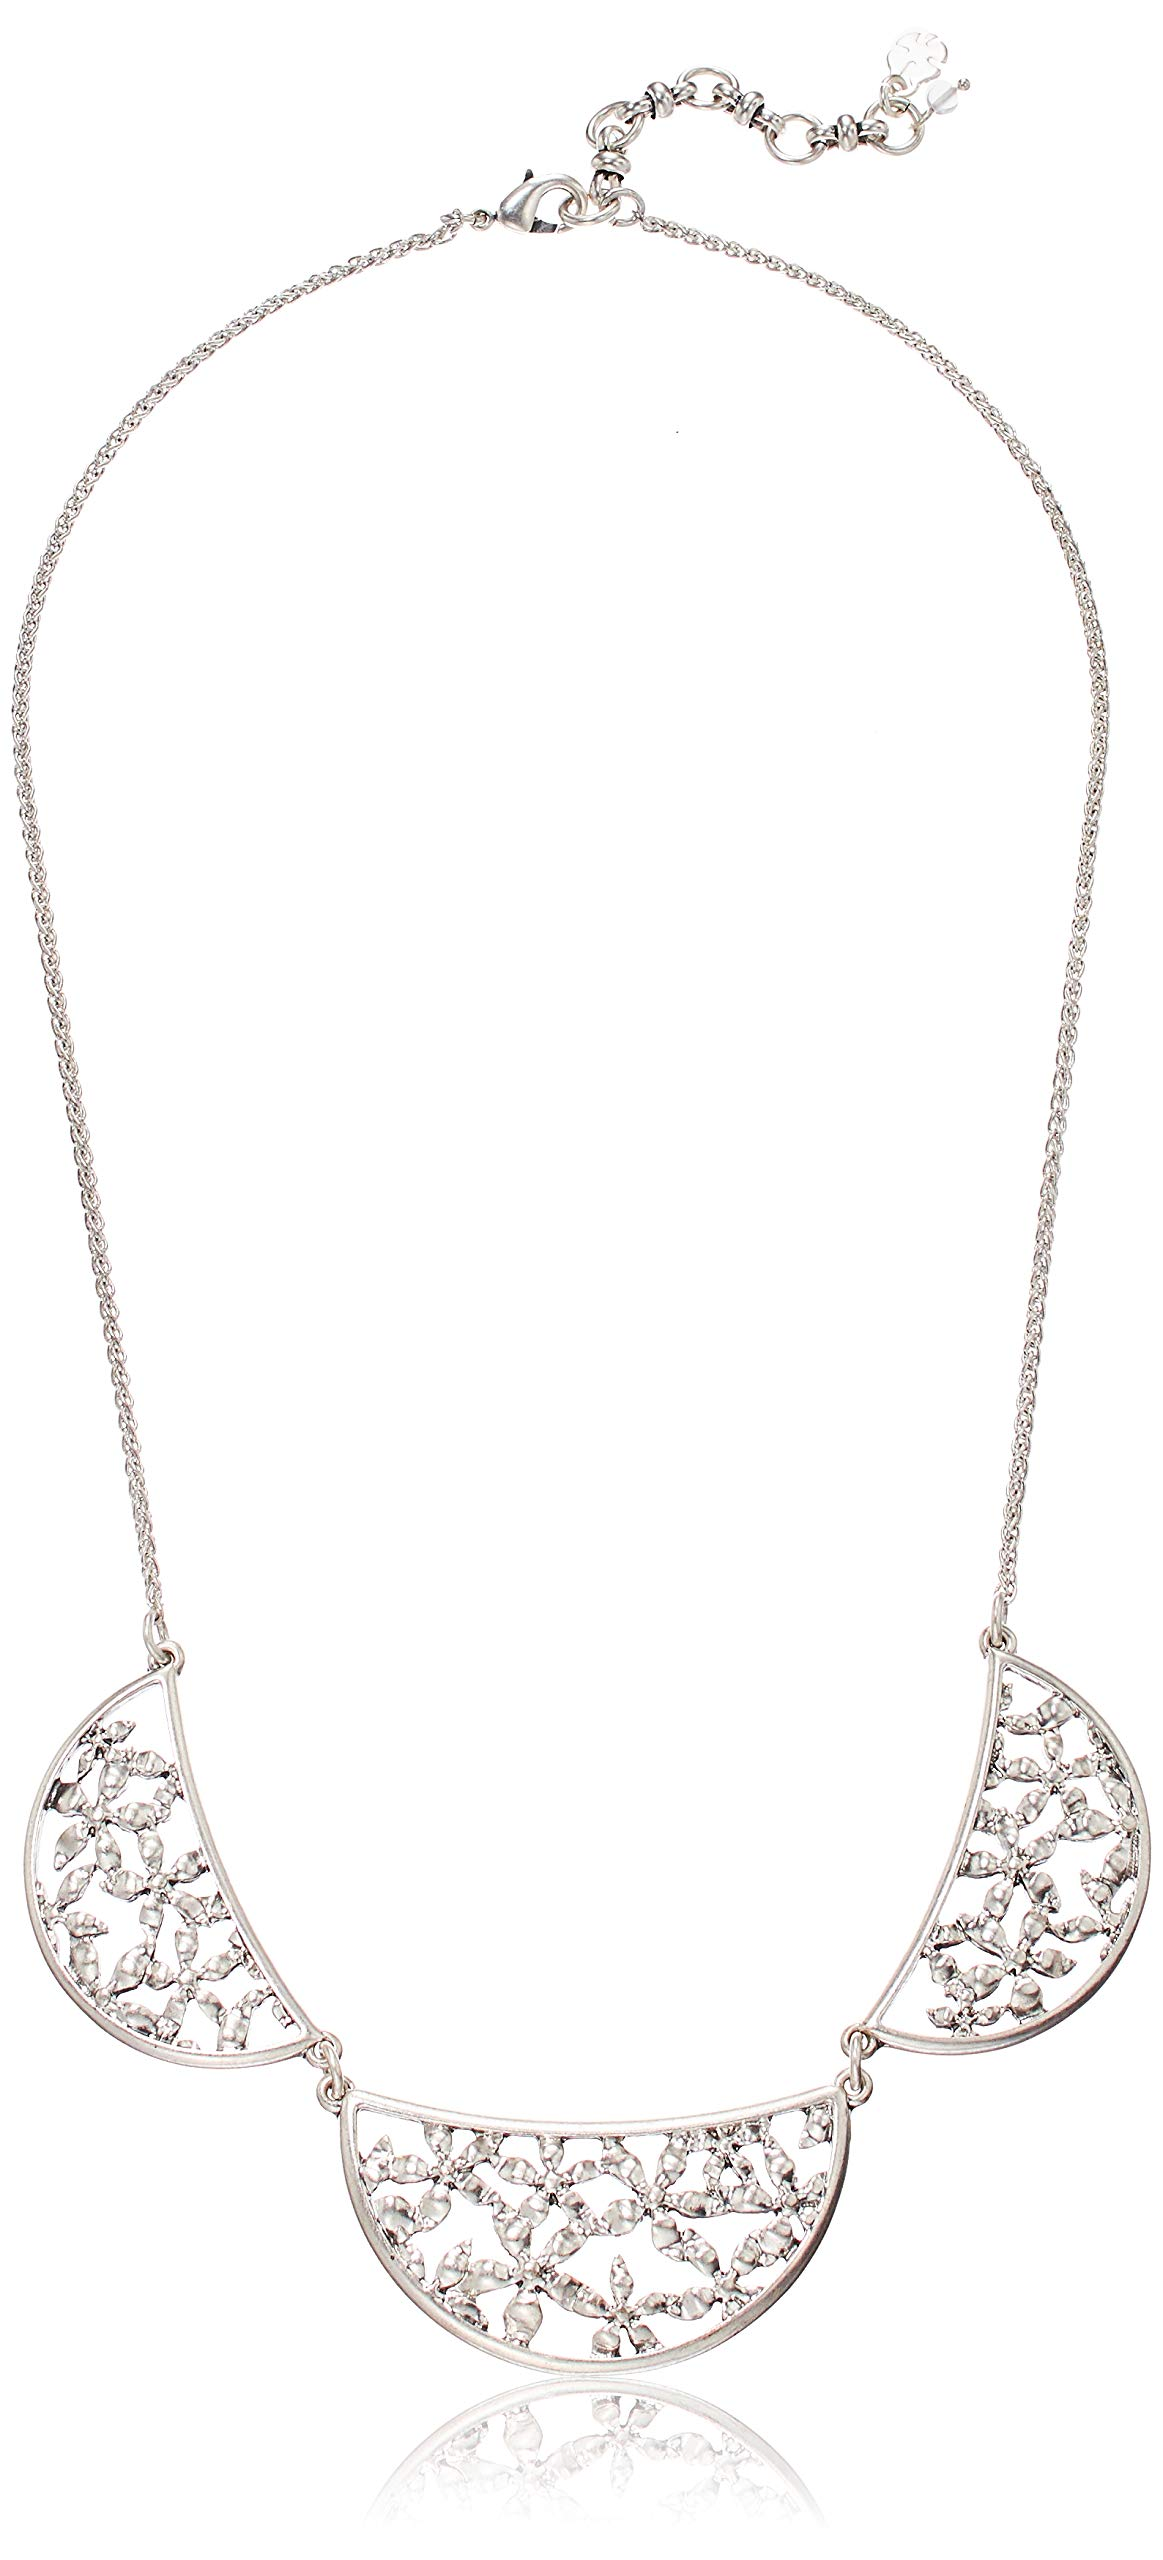 Lucky Brand Women's Open Work Floral Collar Necklace, Silver, One Size